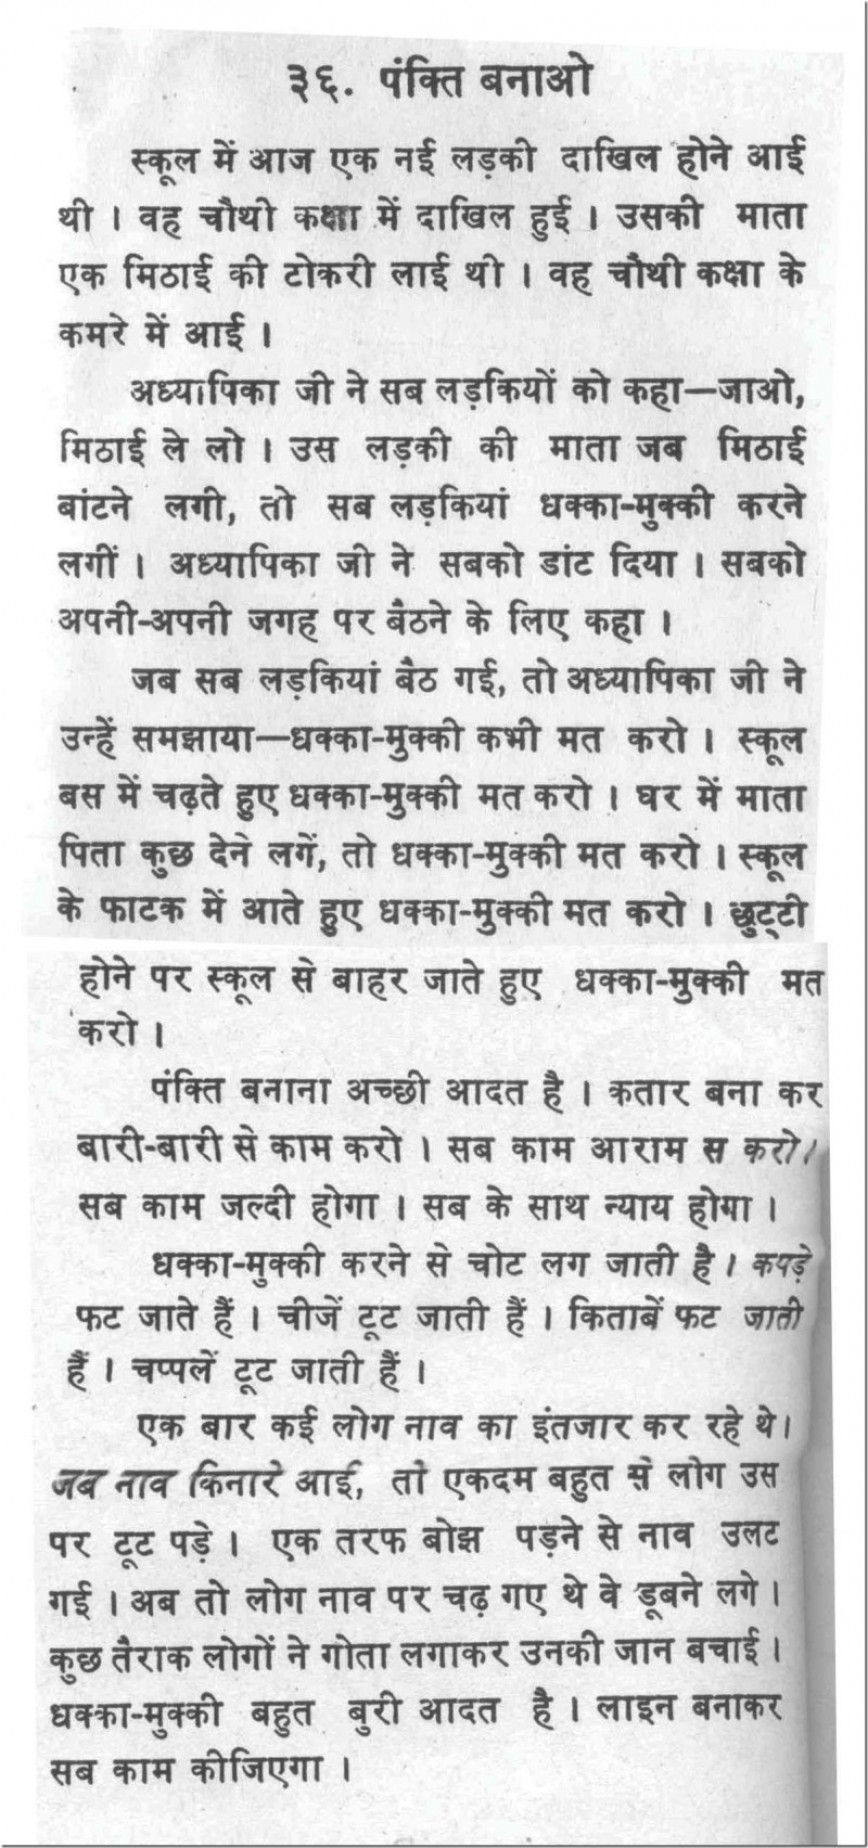 003 10030 Thumbresize8002c1704 Good Habits Essay In Hindi Exceptional Reading Habit Wikipedia 868